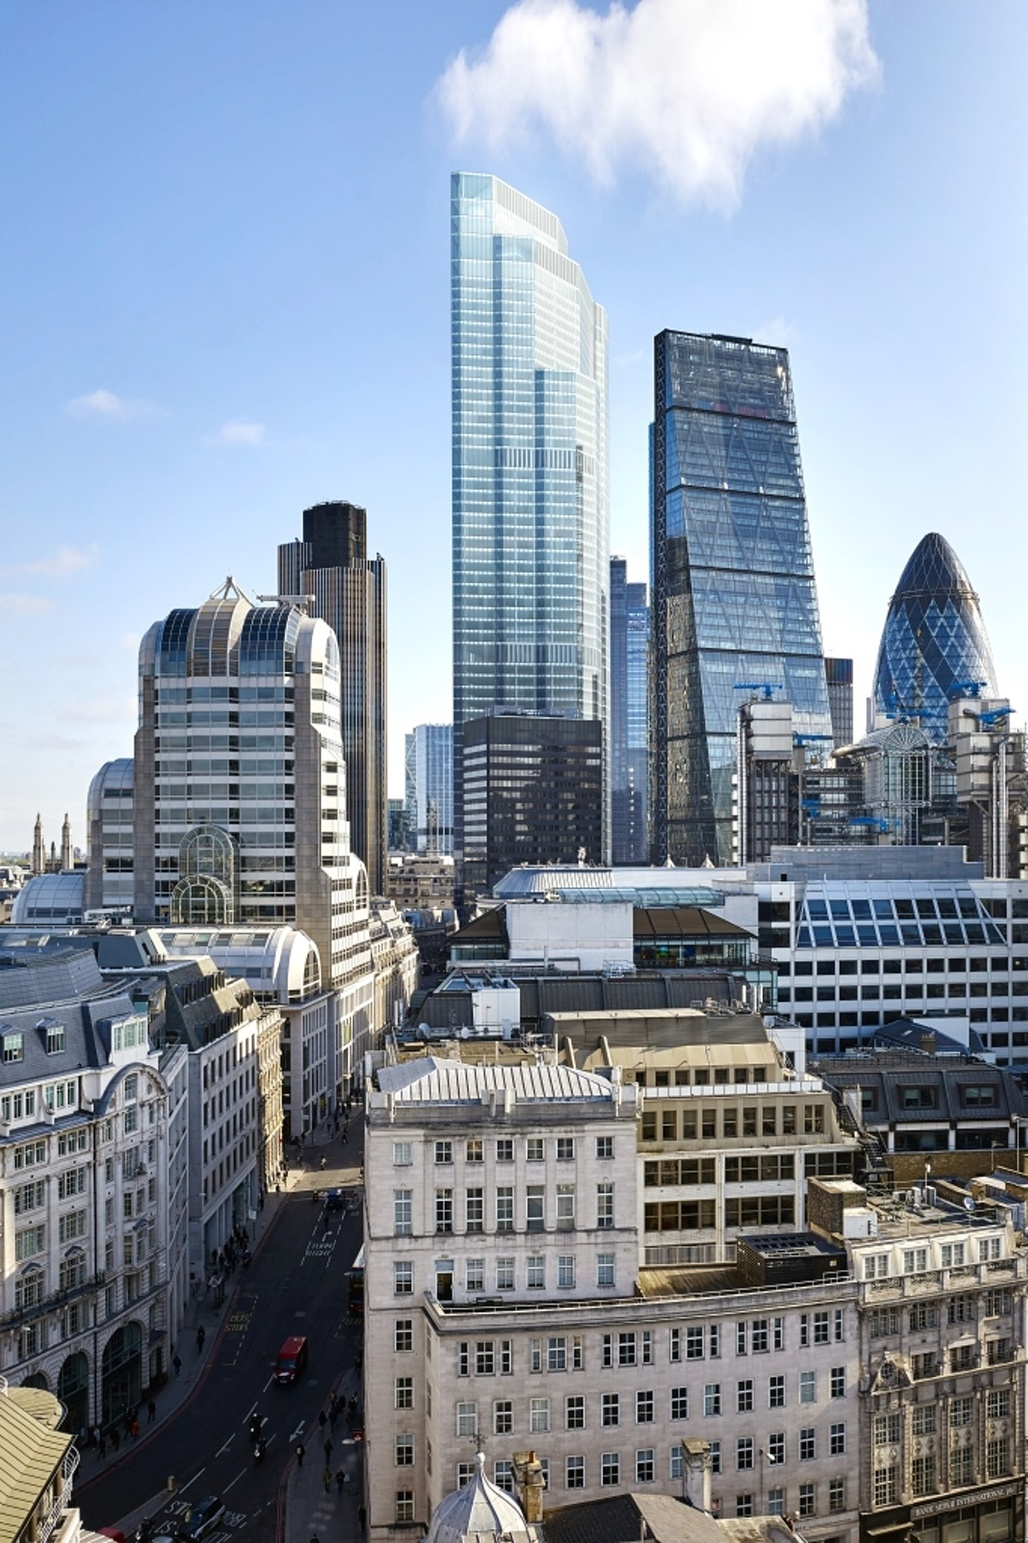 Move over, Cheesegrater & Gherkin: now pumped with new lifeblood, 22 Bishopsgate will be the City of Londons tallest building. (Rendering by PLP Architecture)